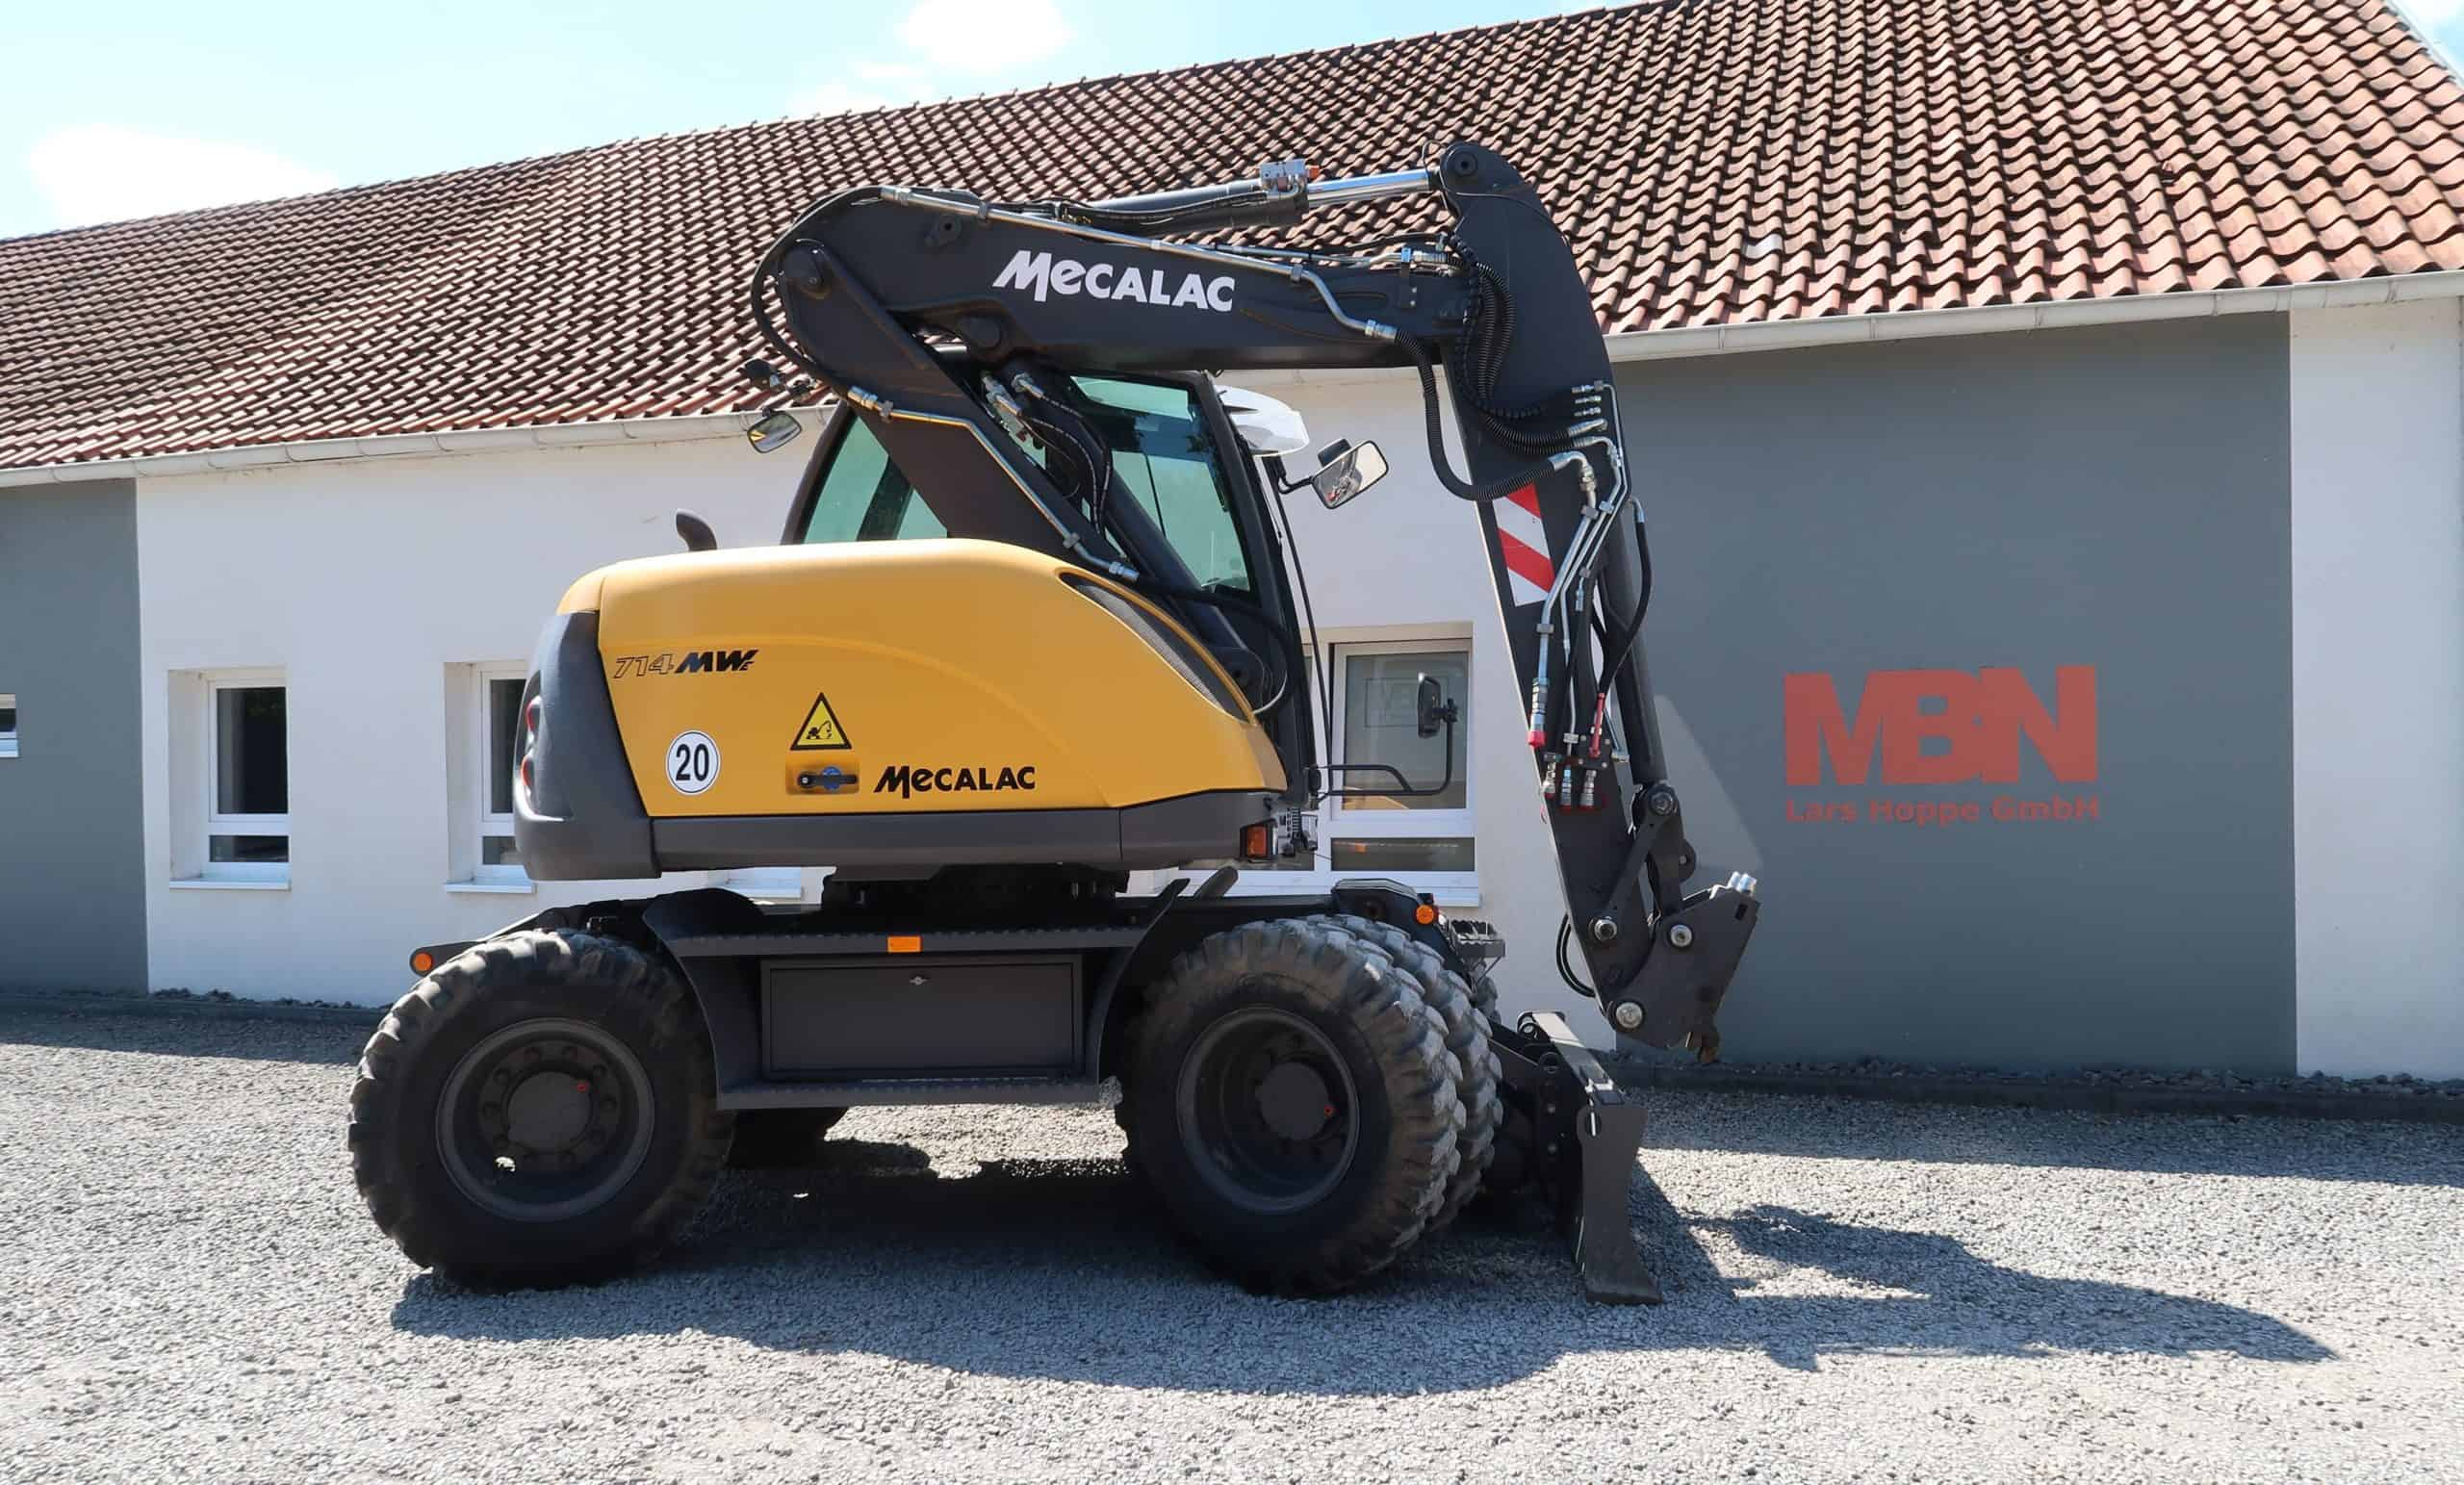 Mecalac-714-MWE-Mobilbagger-Heck-bei-MBN